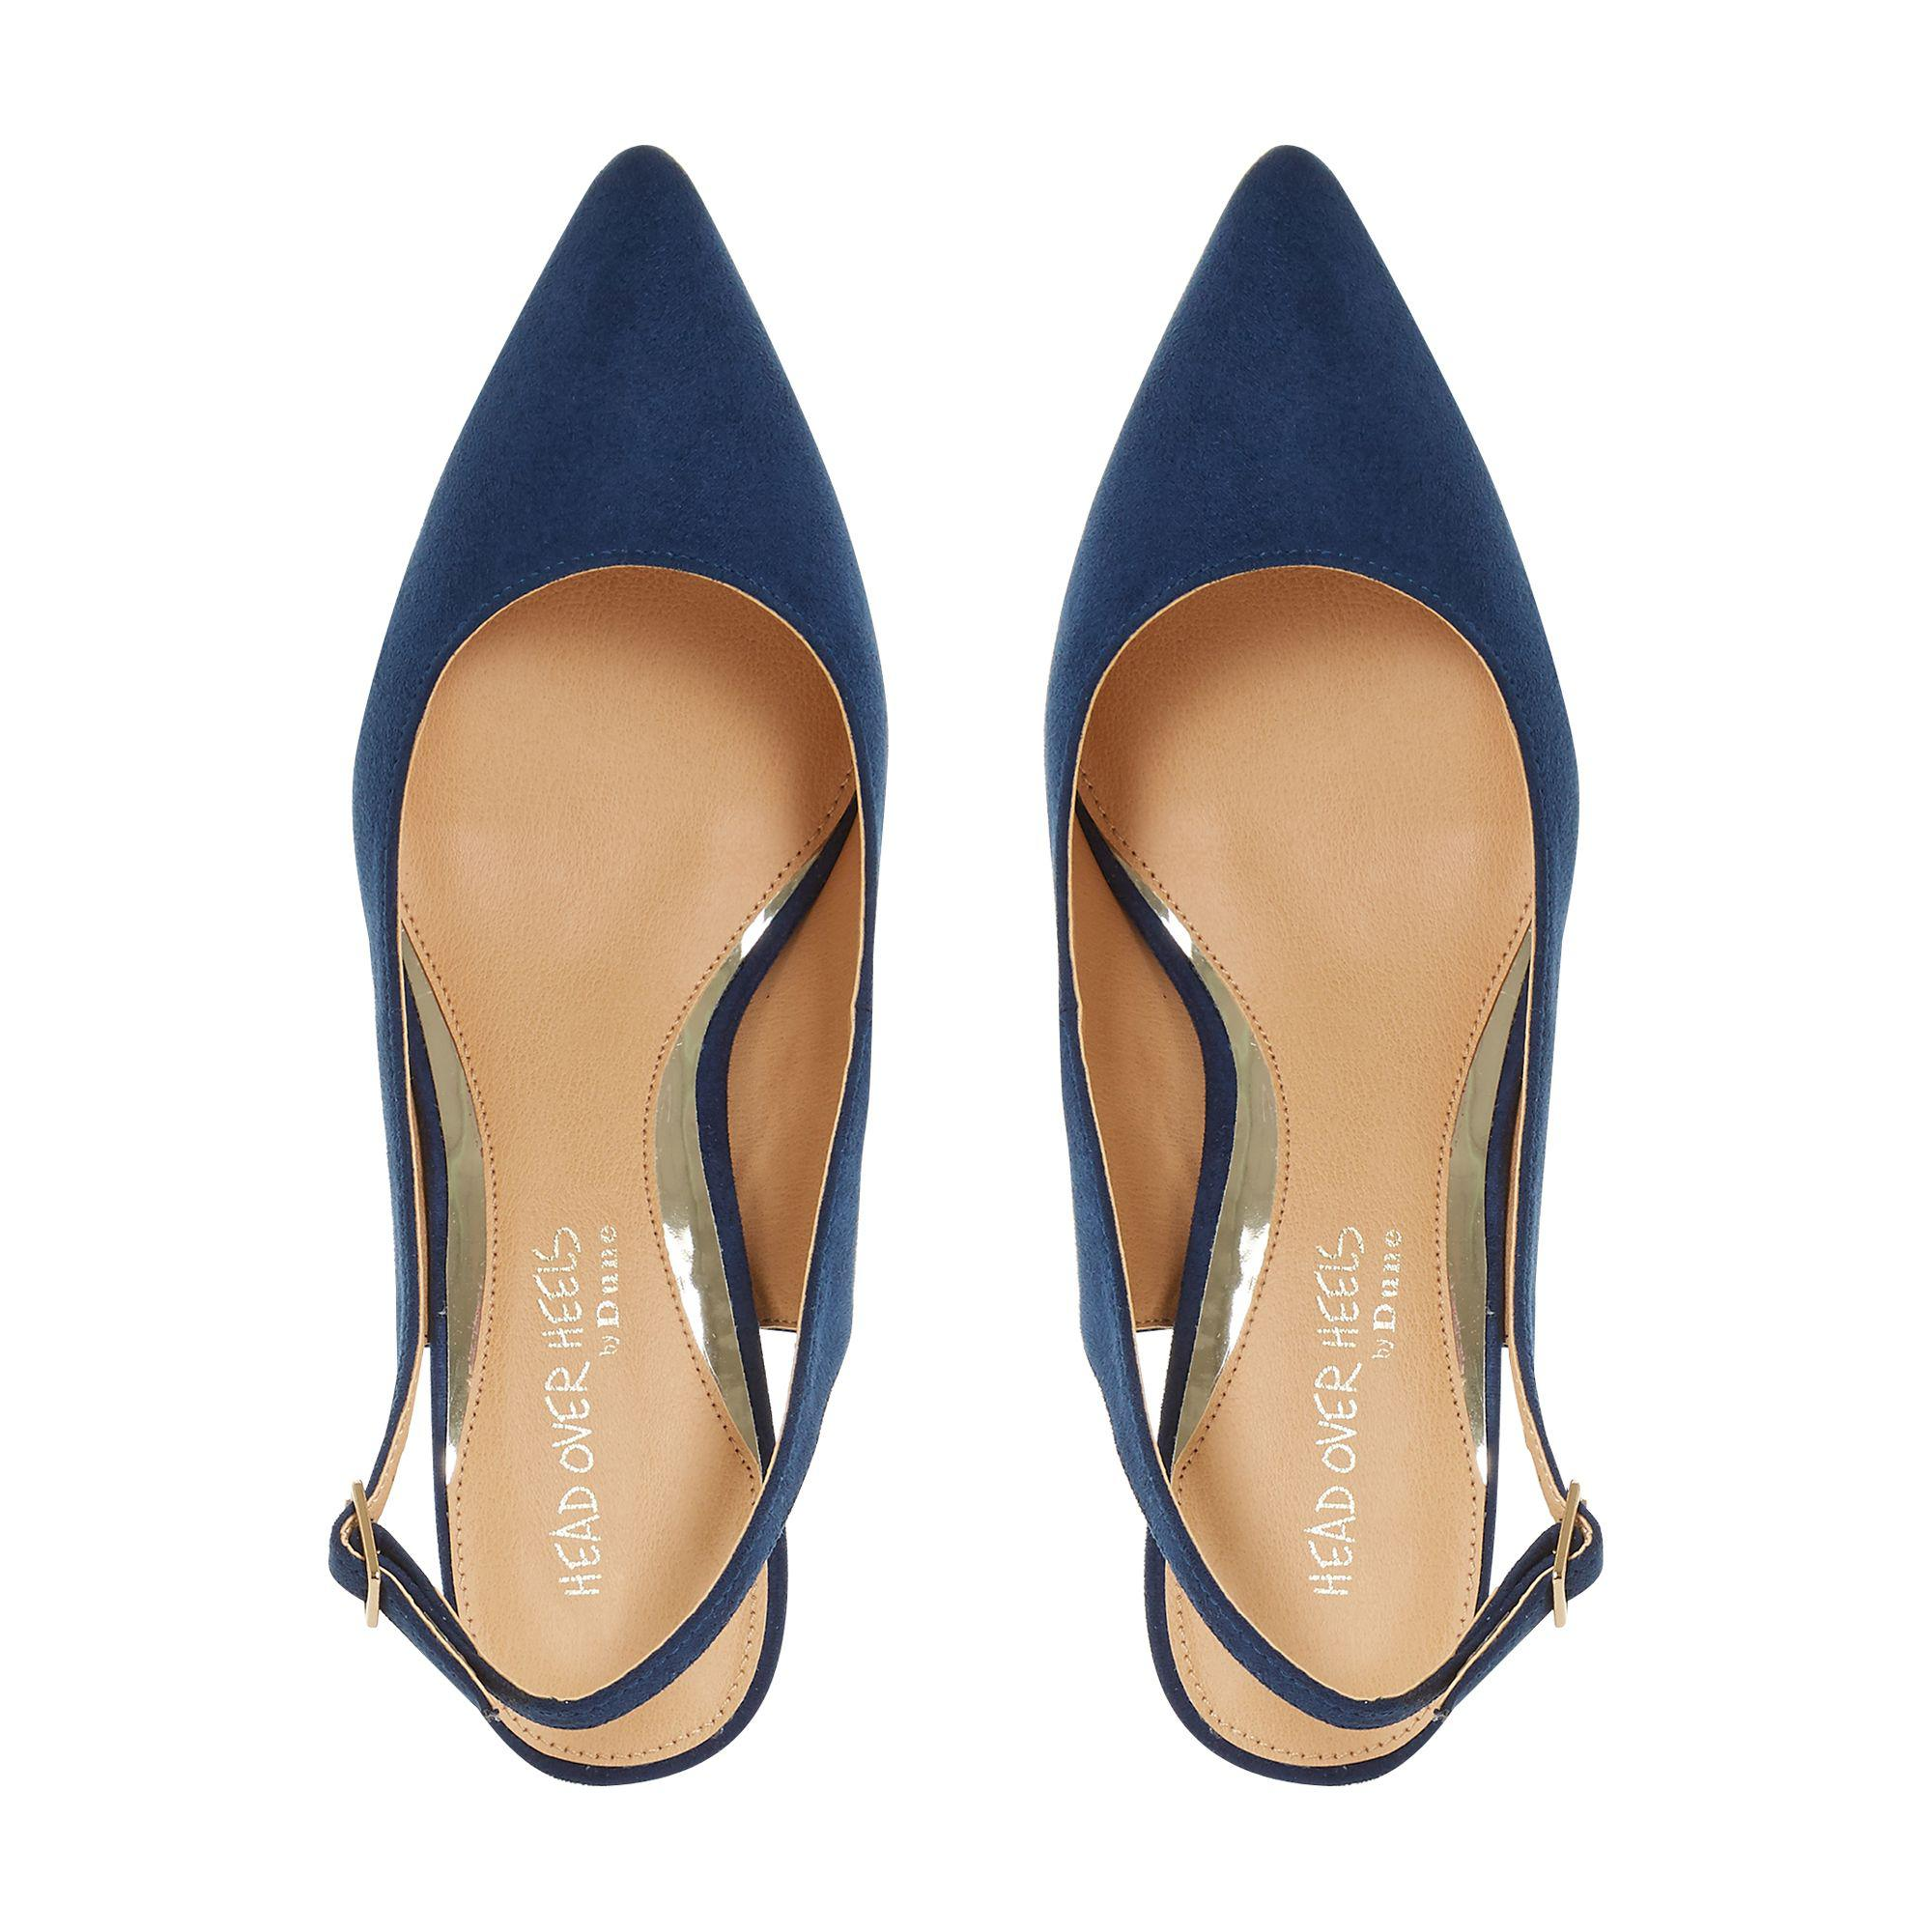 1d57ca54452 Dune Navy  corrin  Kitten Heel Court Shoes in Blue - Lyst